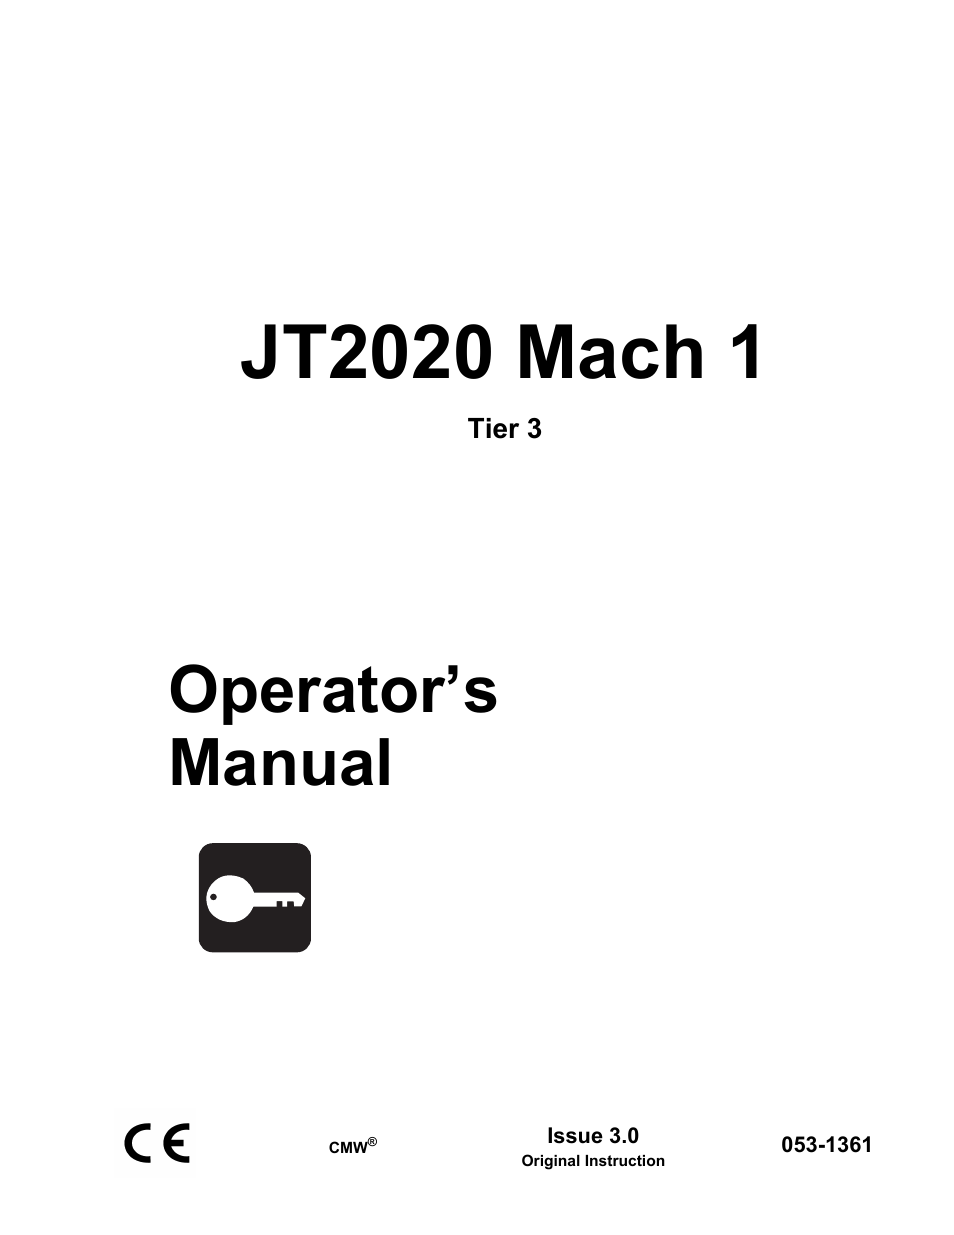 ditch witch jt2020 user manual 203 pages rh manualsdir com ditch witch jt1720 operators manual ditch witch operator's manual